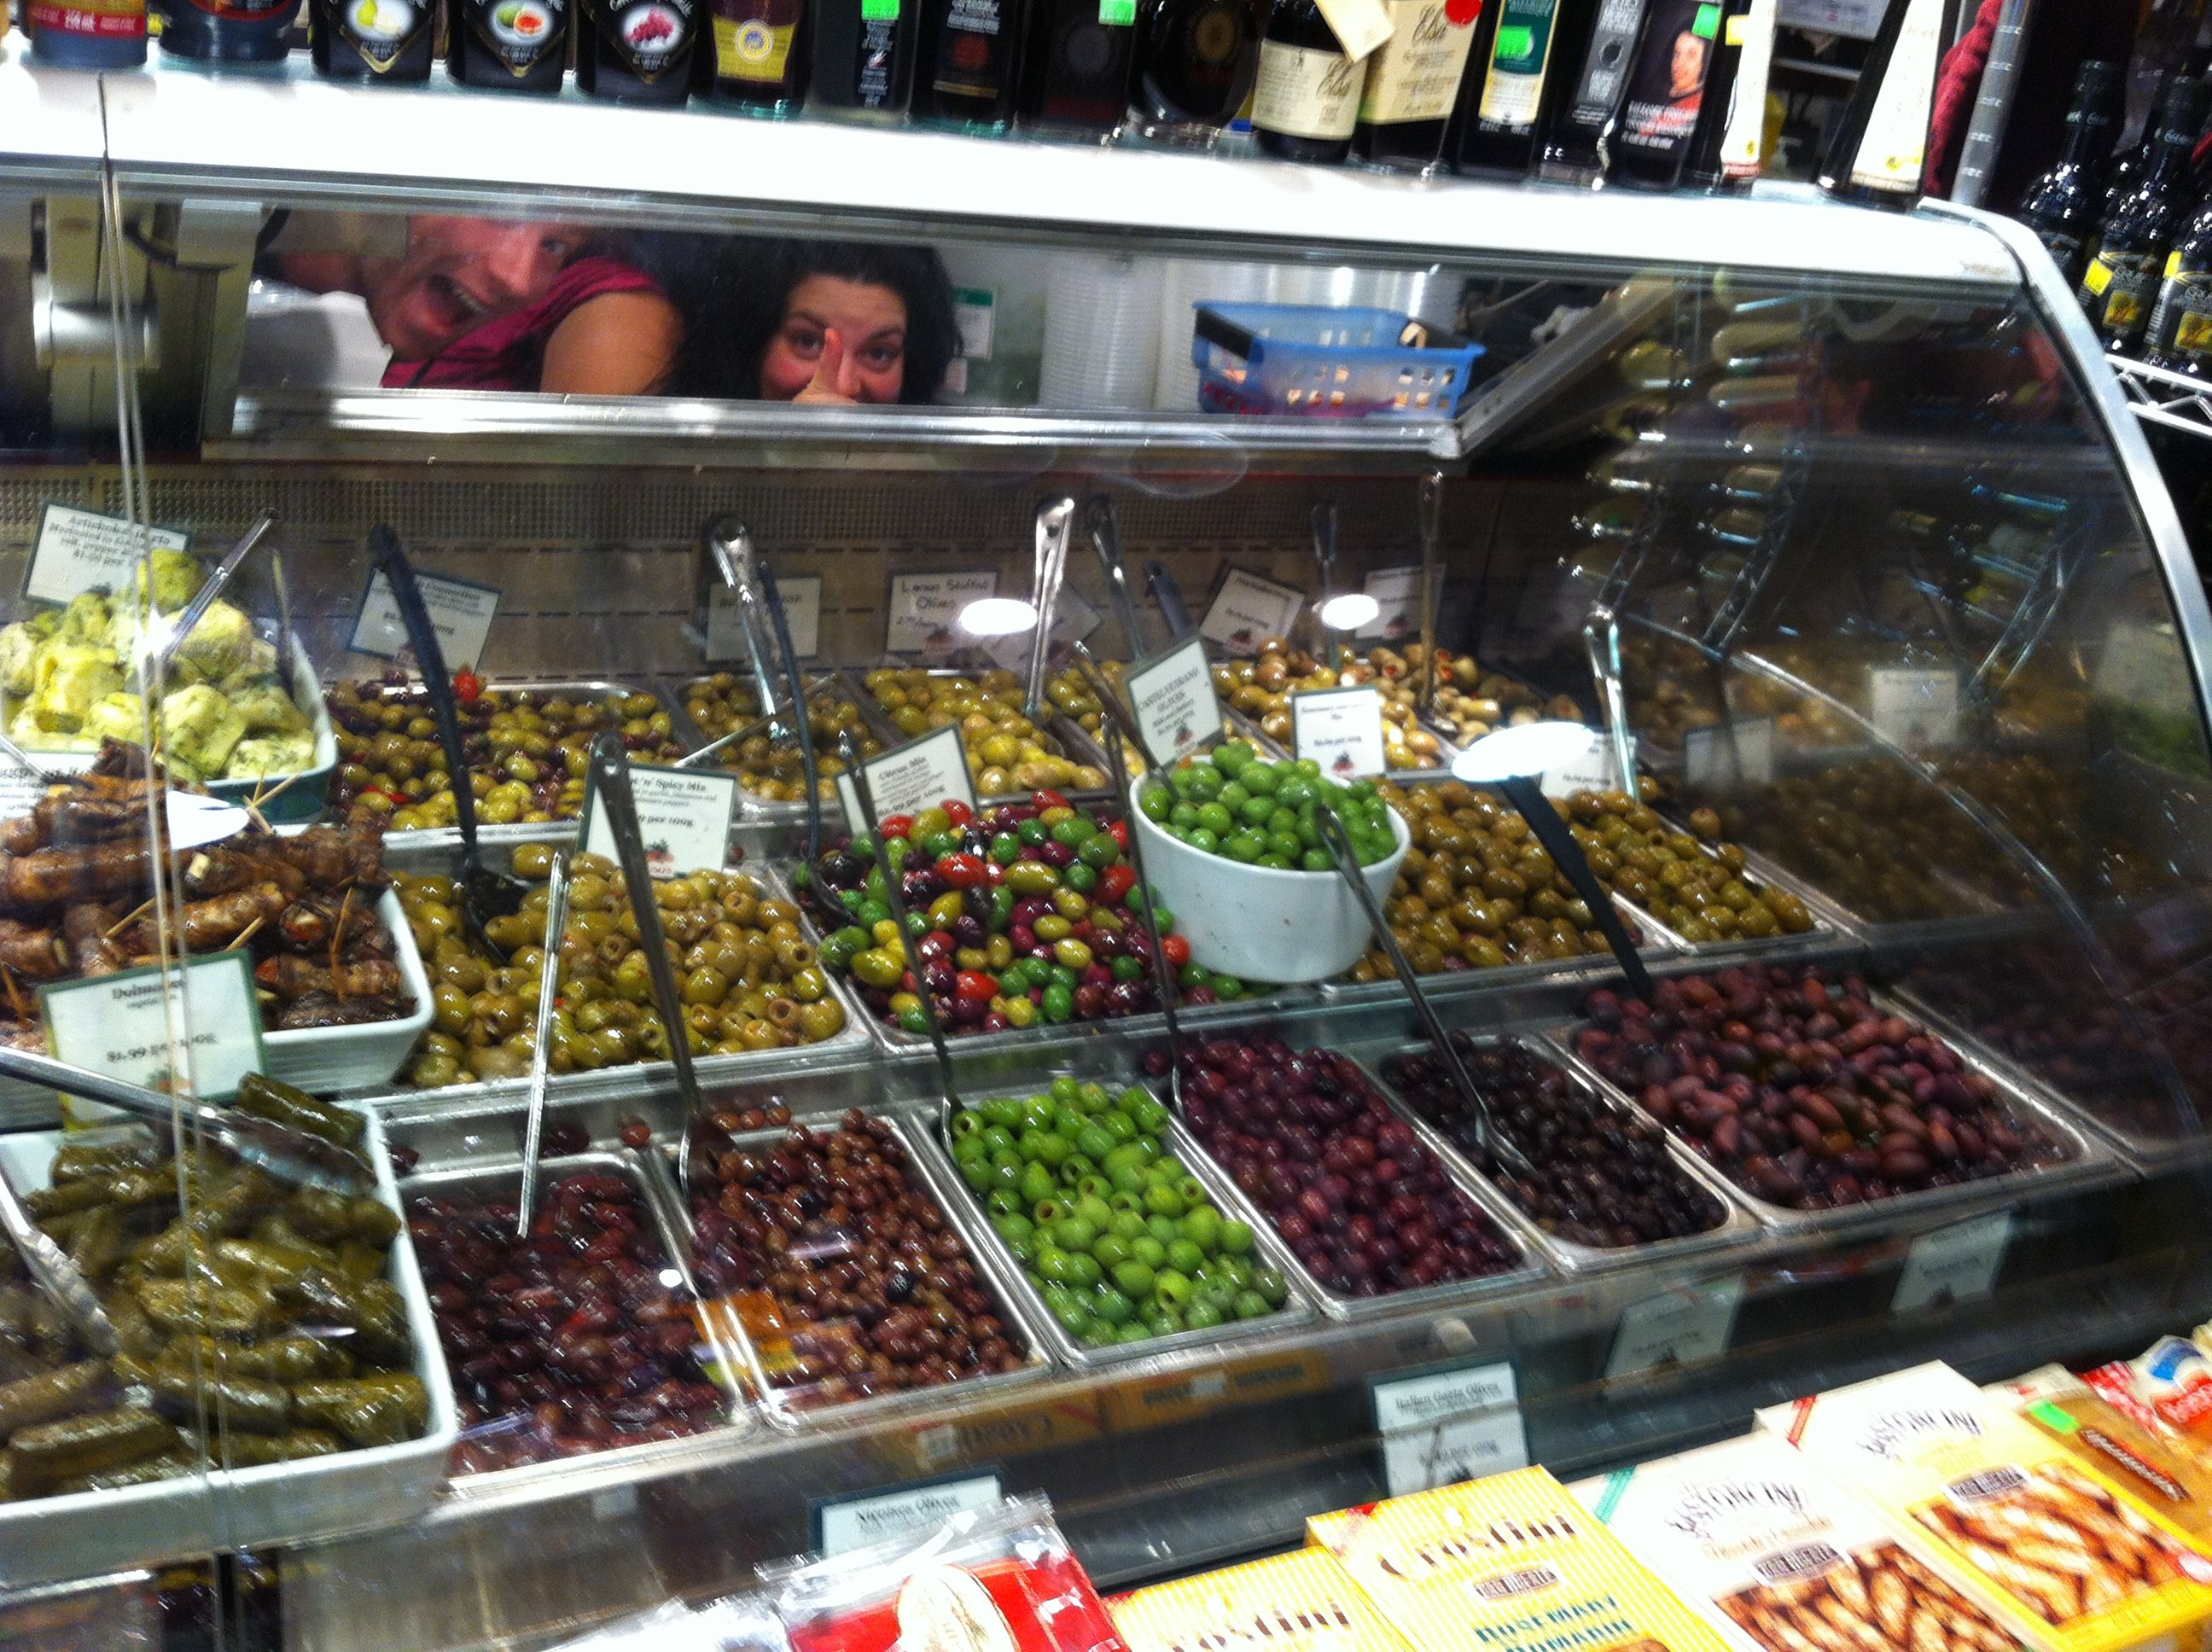 Granville Island Marketplace; check out those merry faces behind the olive display.  And yes, my mouth was watering at this counter too.